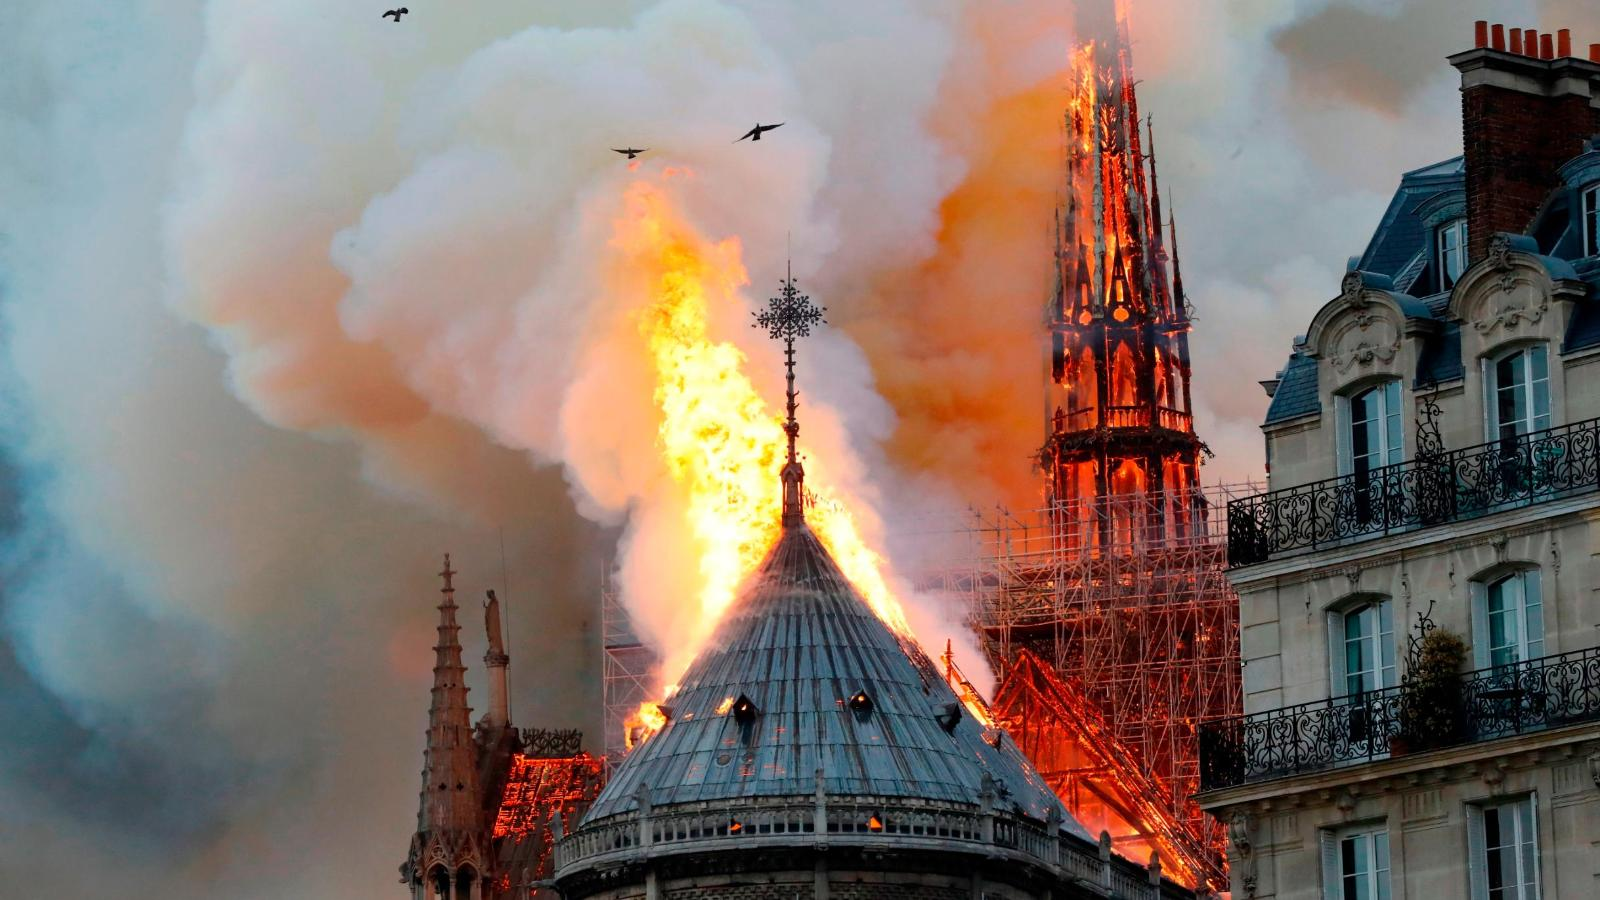 https://cnnespanol.cnn.com/wp-content/uploads/2019/04/190415140426-la-destruccion-de-notre-dame-incendio-paris-oirginal-digital-pkg-00000000-full-169.jpg?quality=100&strip=info